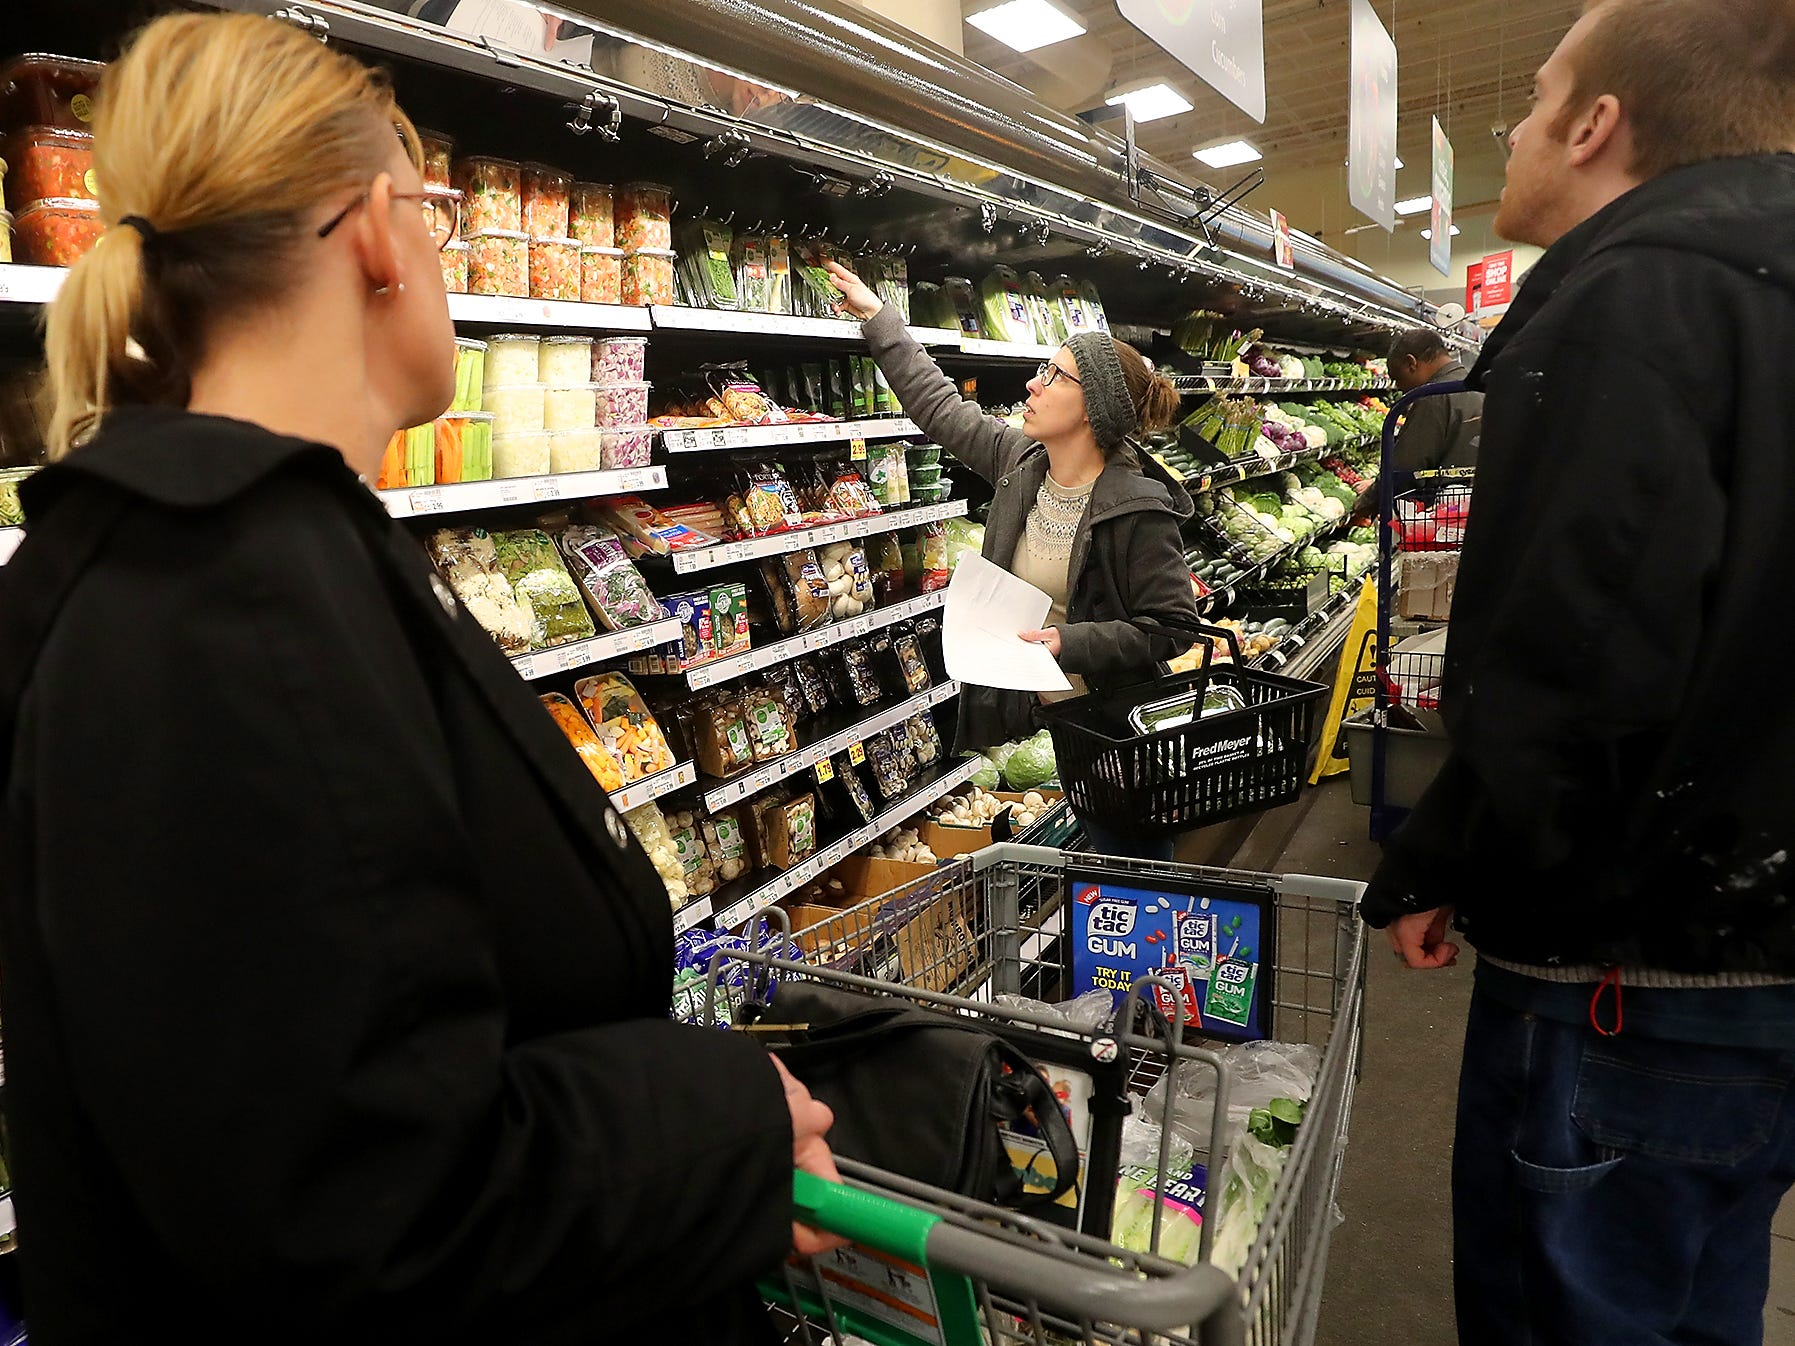 Sous chef Britney Doyle (center) talks about the different kind of fresh herbs available for their soup recipe as Brandy Mathews (left) and Craig Andrews (right) look on at Fred Meyer in Bremerton on Wednesday, February 20, 2019.